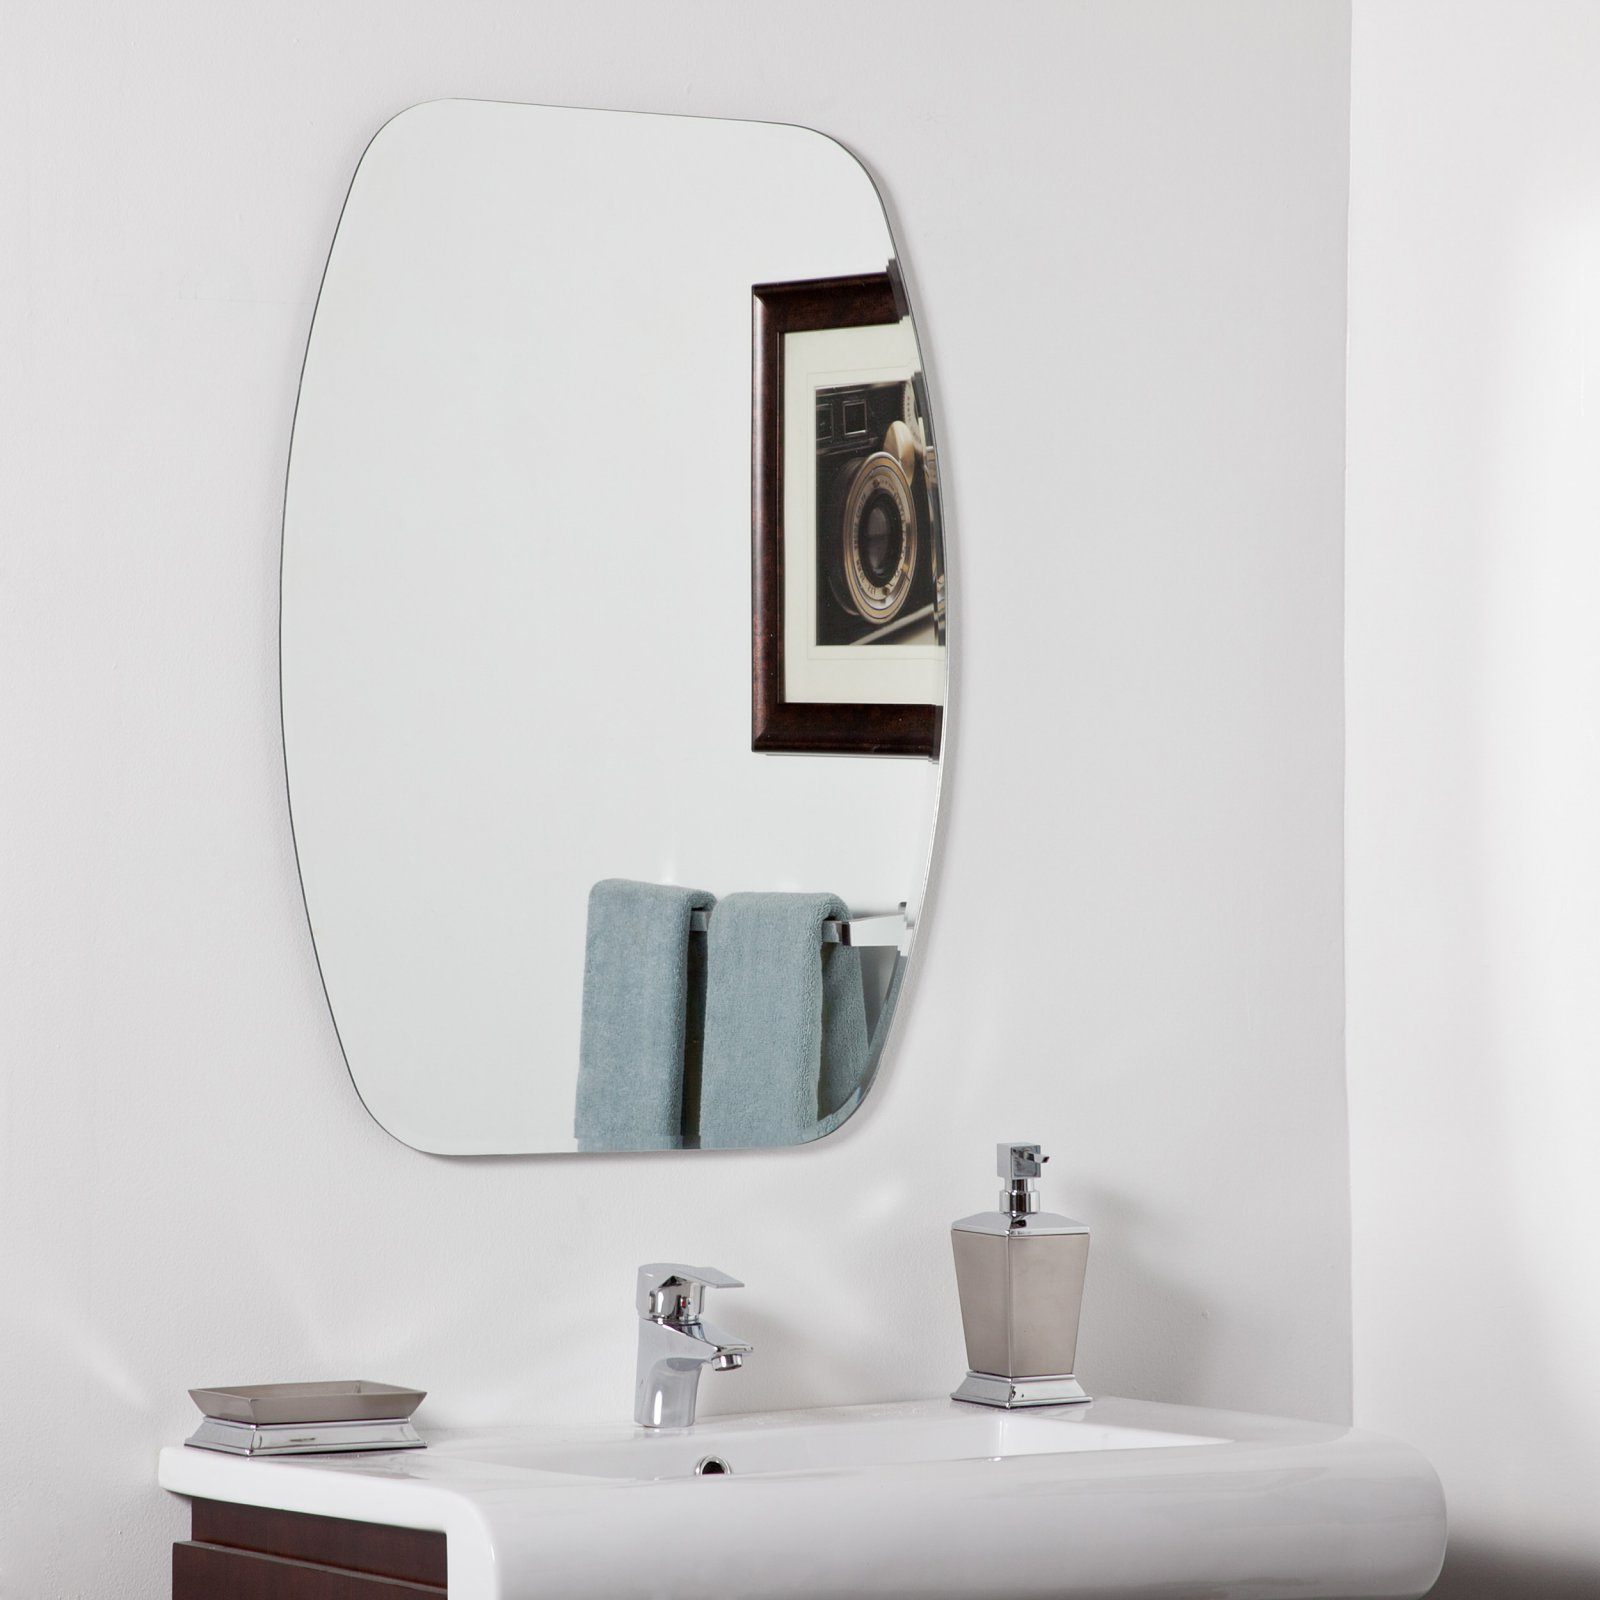 Décor Wonderland Sydney Modern Bathroom Mirror 23.6W x 31.5H in. by Decor Wonderland